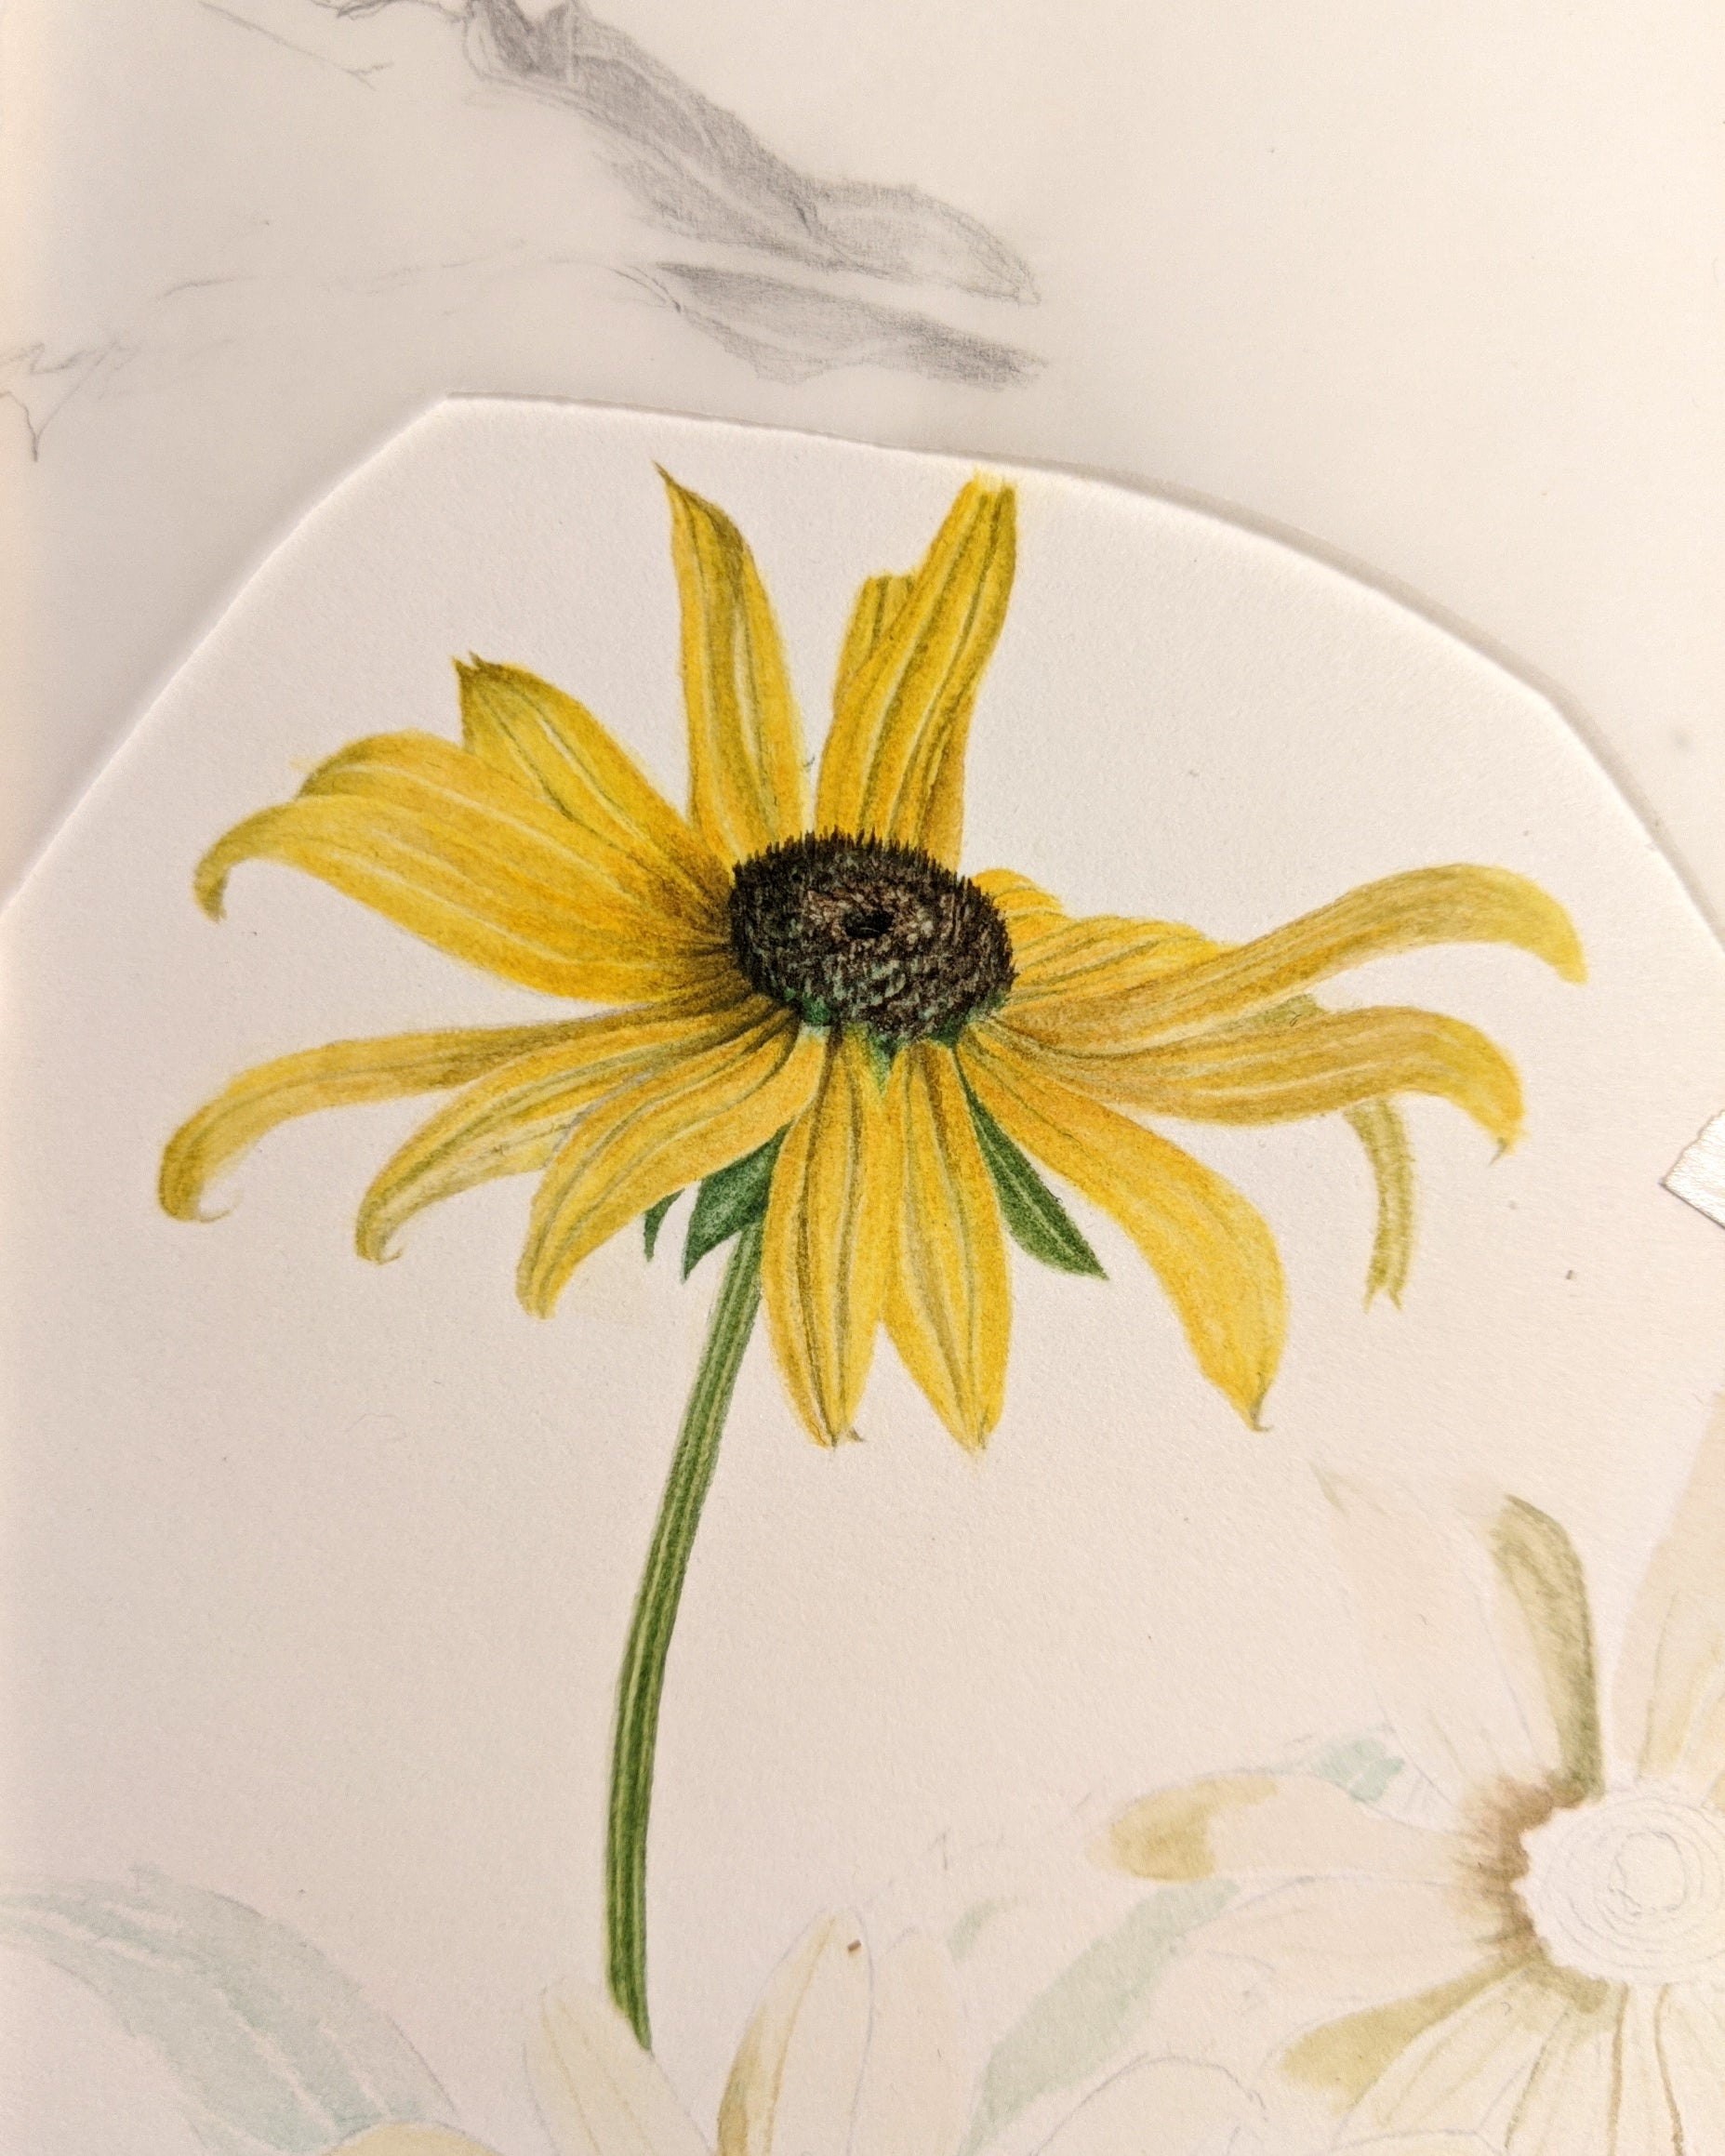 A preliminary sketch of the Black-Eyed Susan